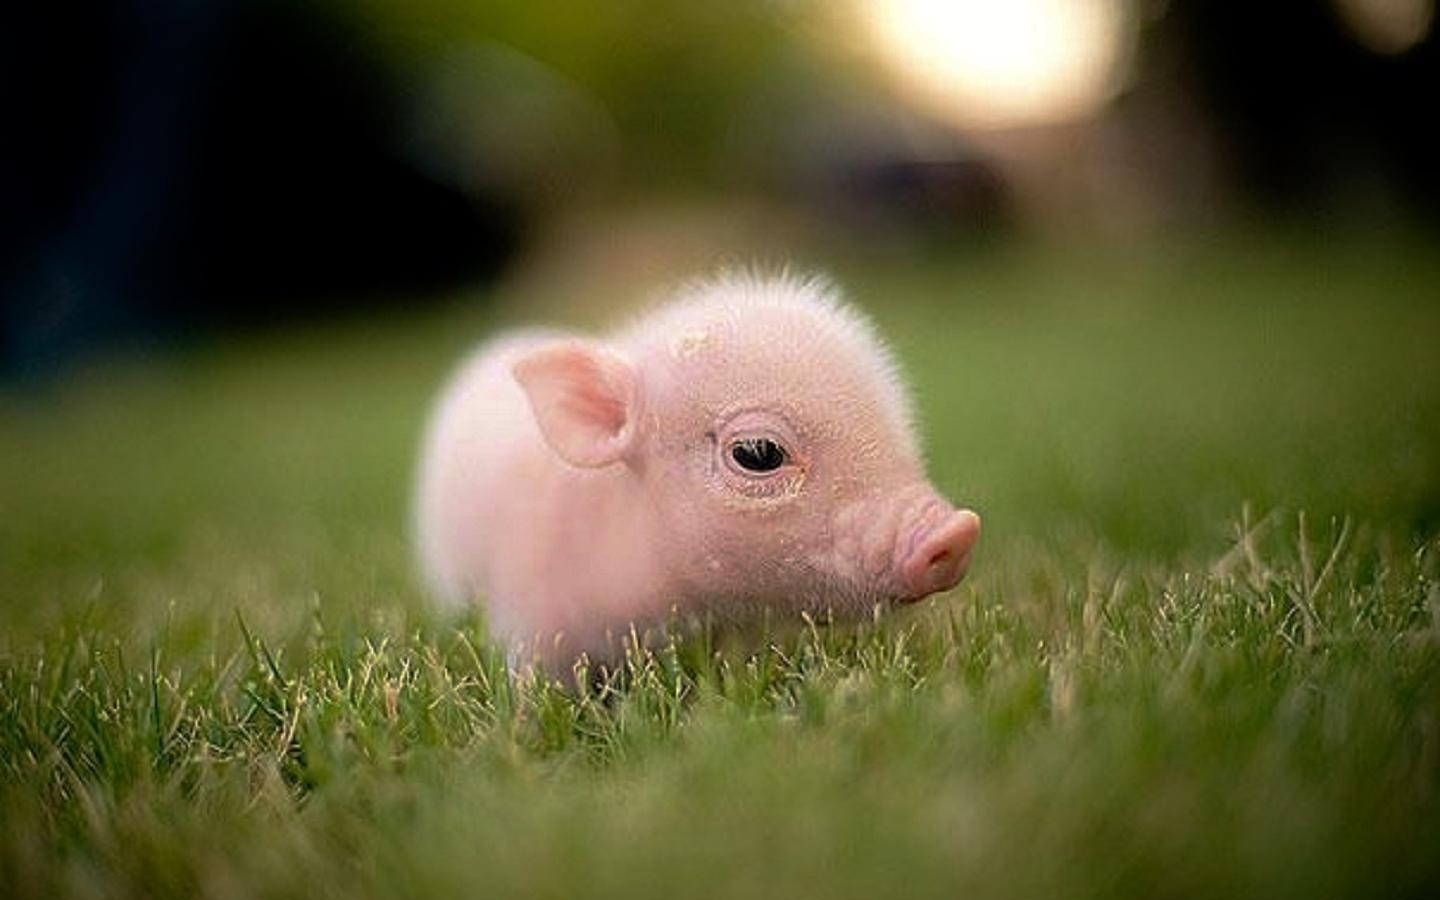 Pigs Images Piglet HD Wallpaper And Background Photos